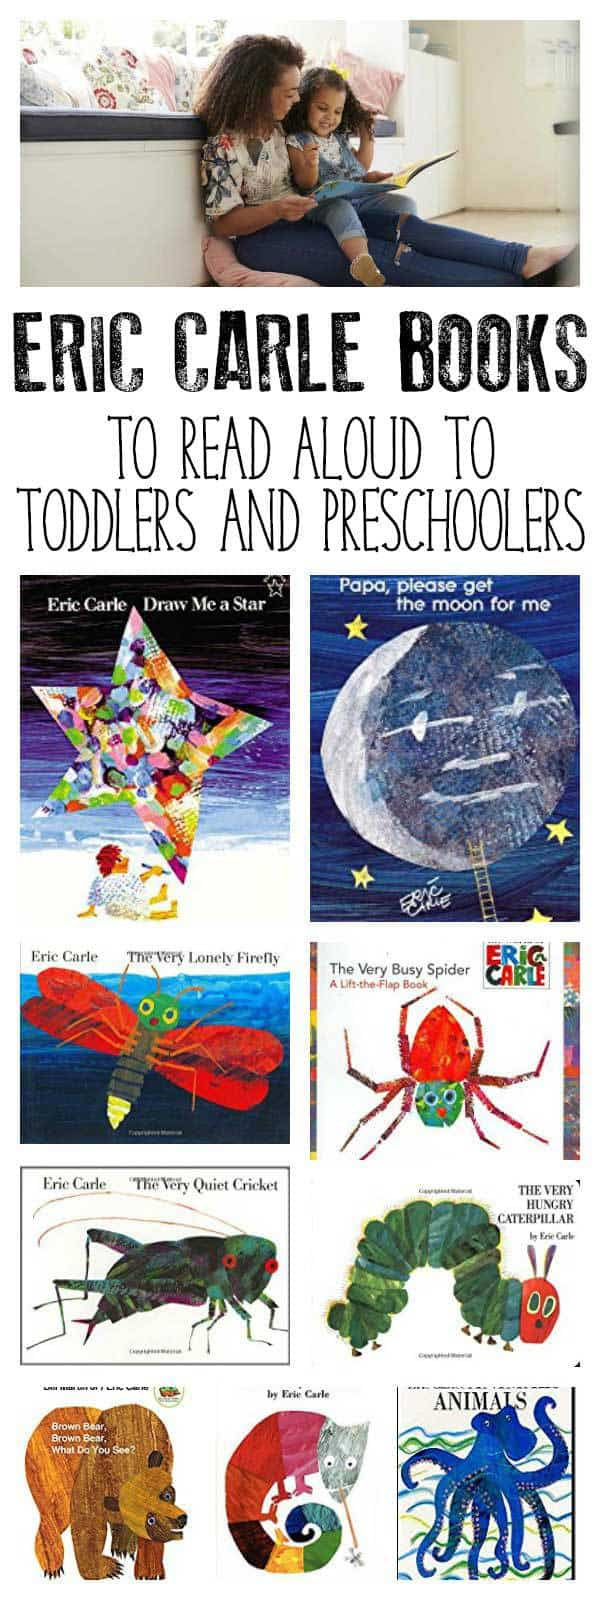 Recommendations for read-aloud books from Eric Carle for Toddlers and Preschoolers. Organised by themes and topics this list features favourite Eric Carle books and those illustrated by Eric Carle ideal to read together.